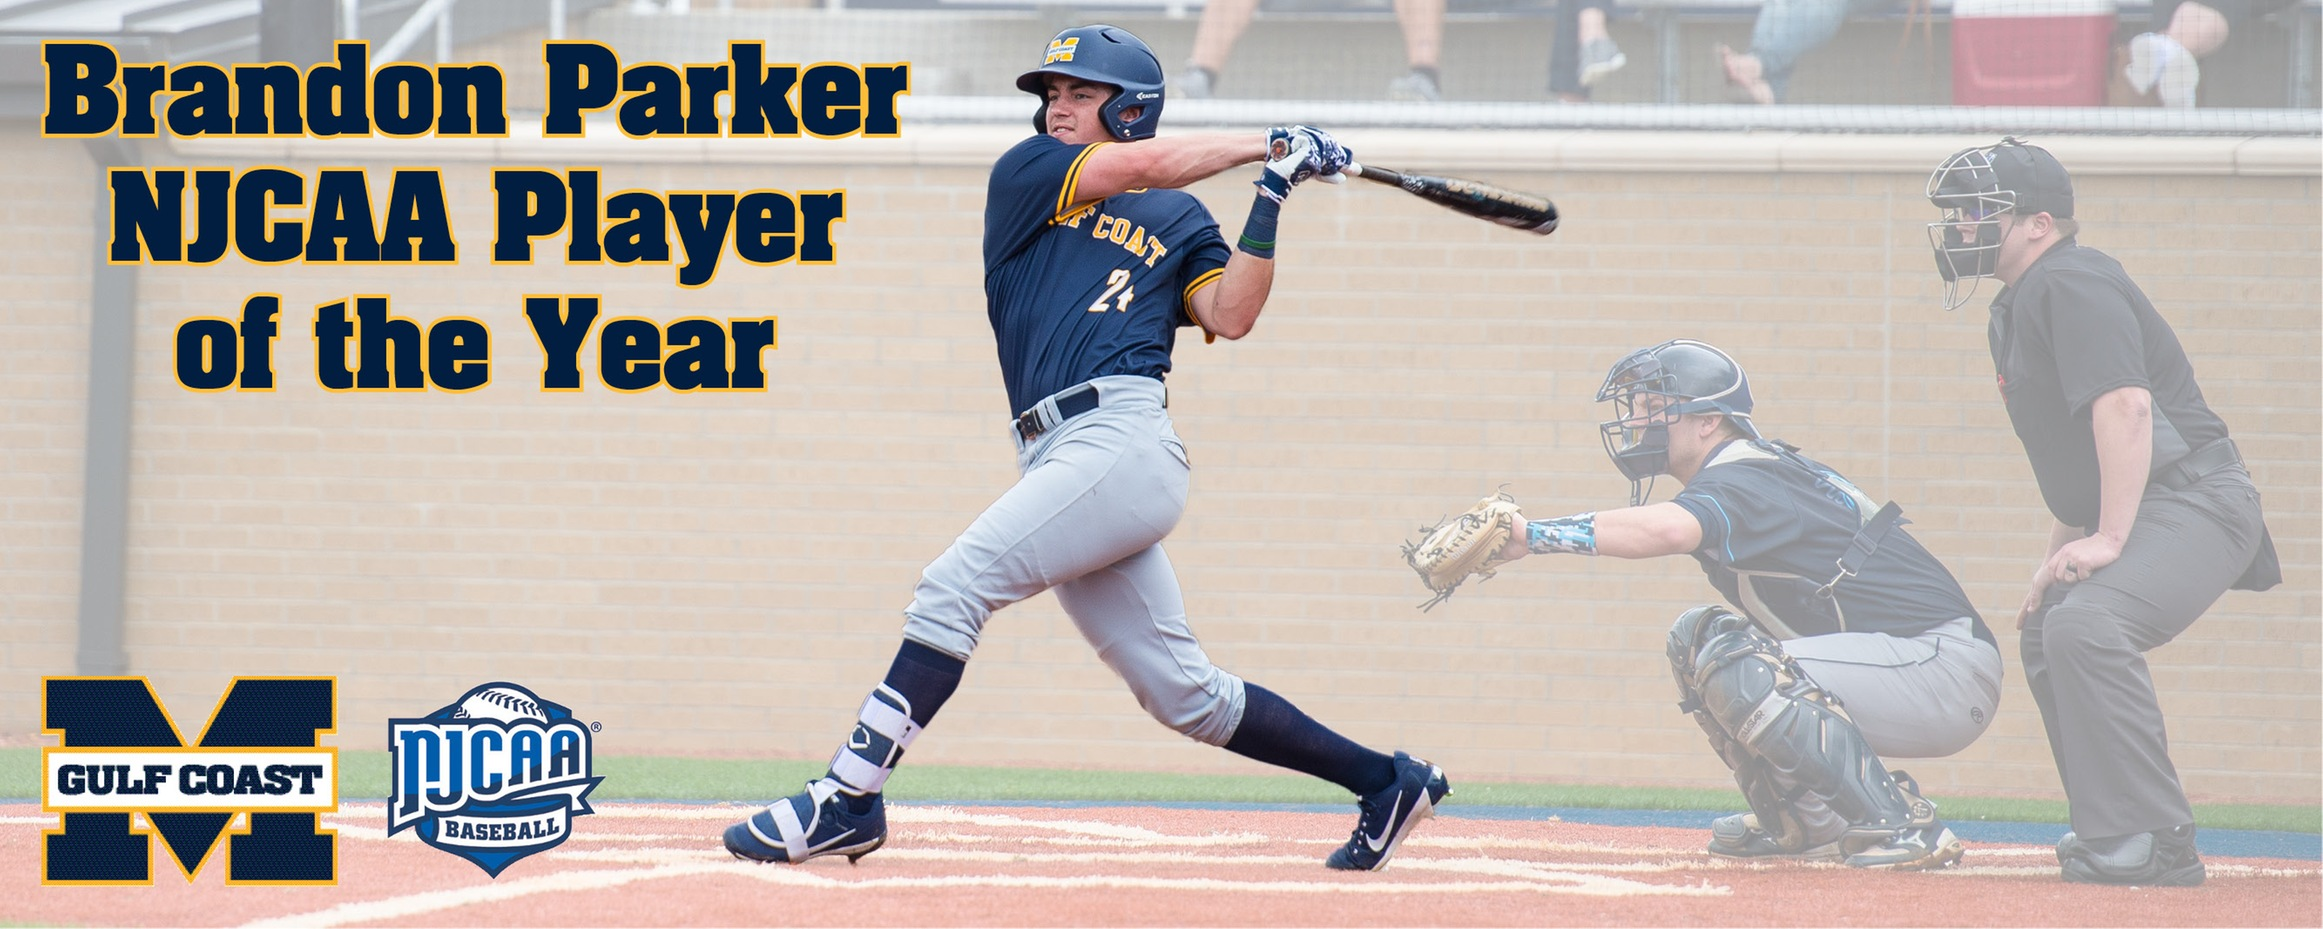 Parker named NJCAA Player of the Year